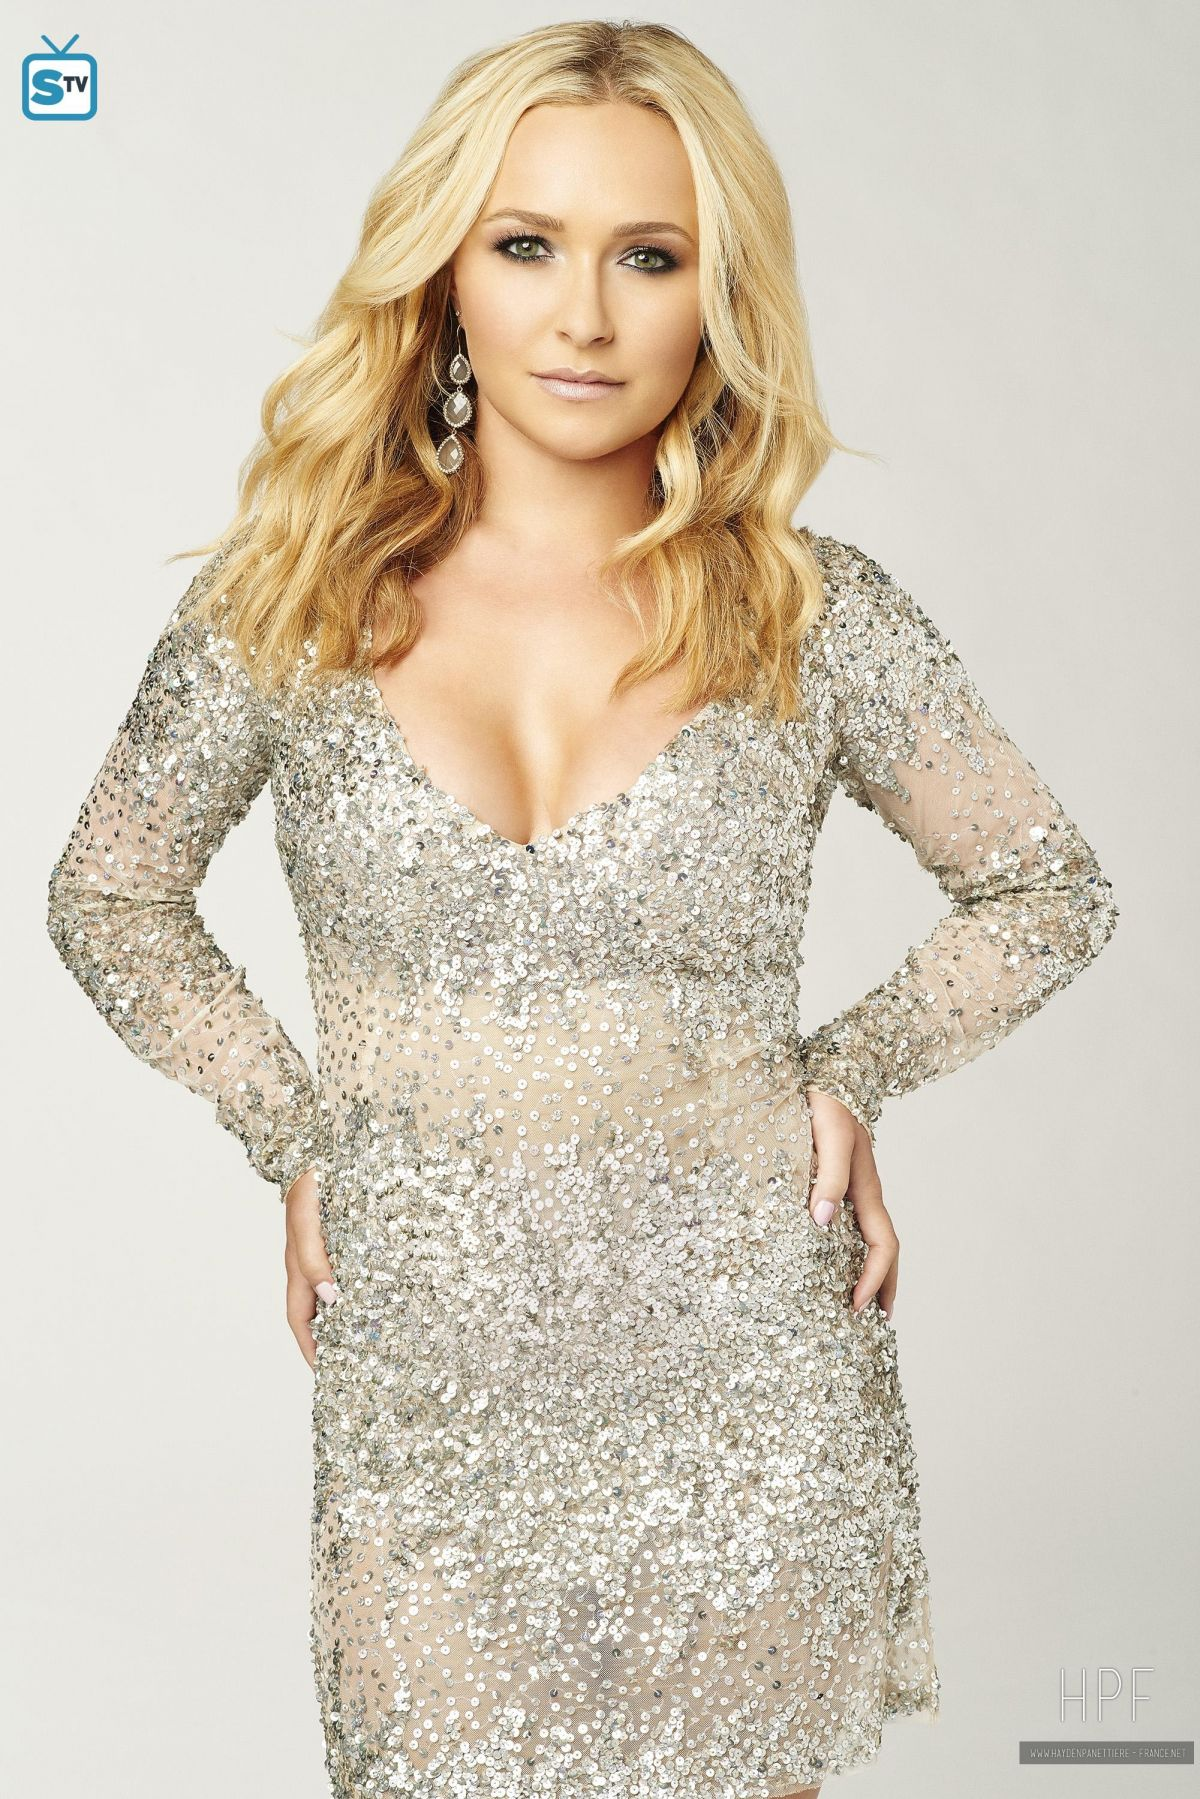 Sense. hayden panettiere nashville rather valuable